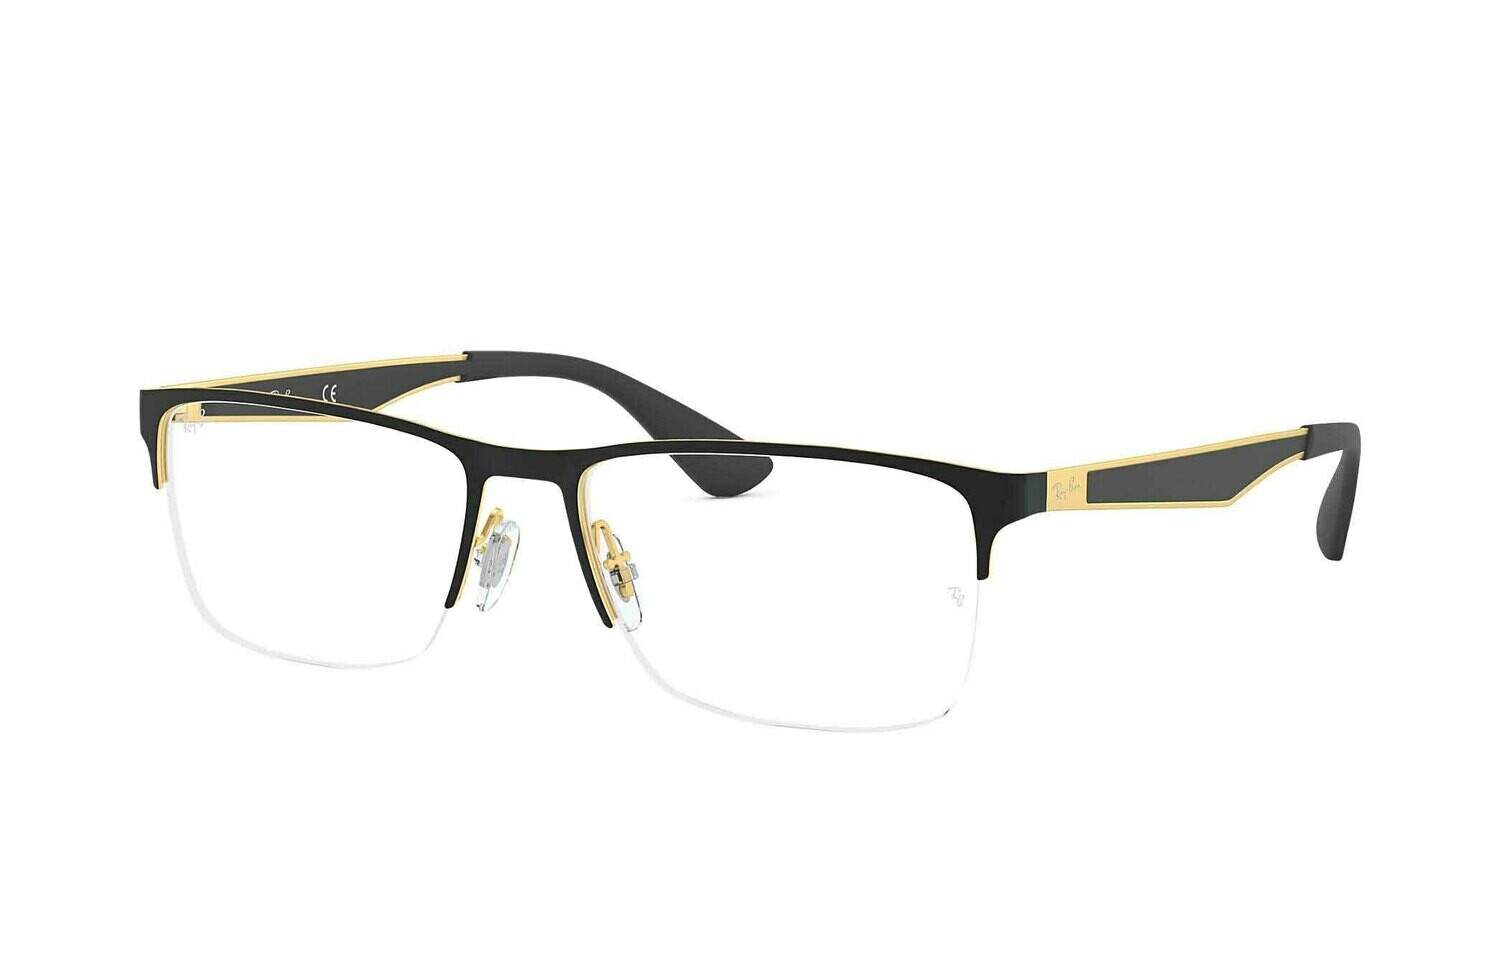 Ray Ban RX6335 Glasses (5)